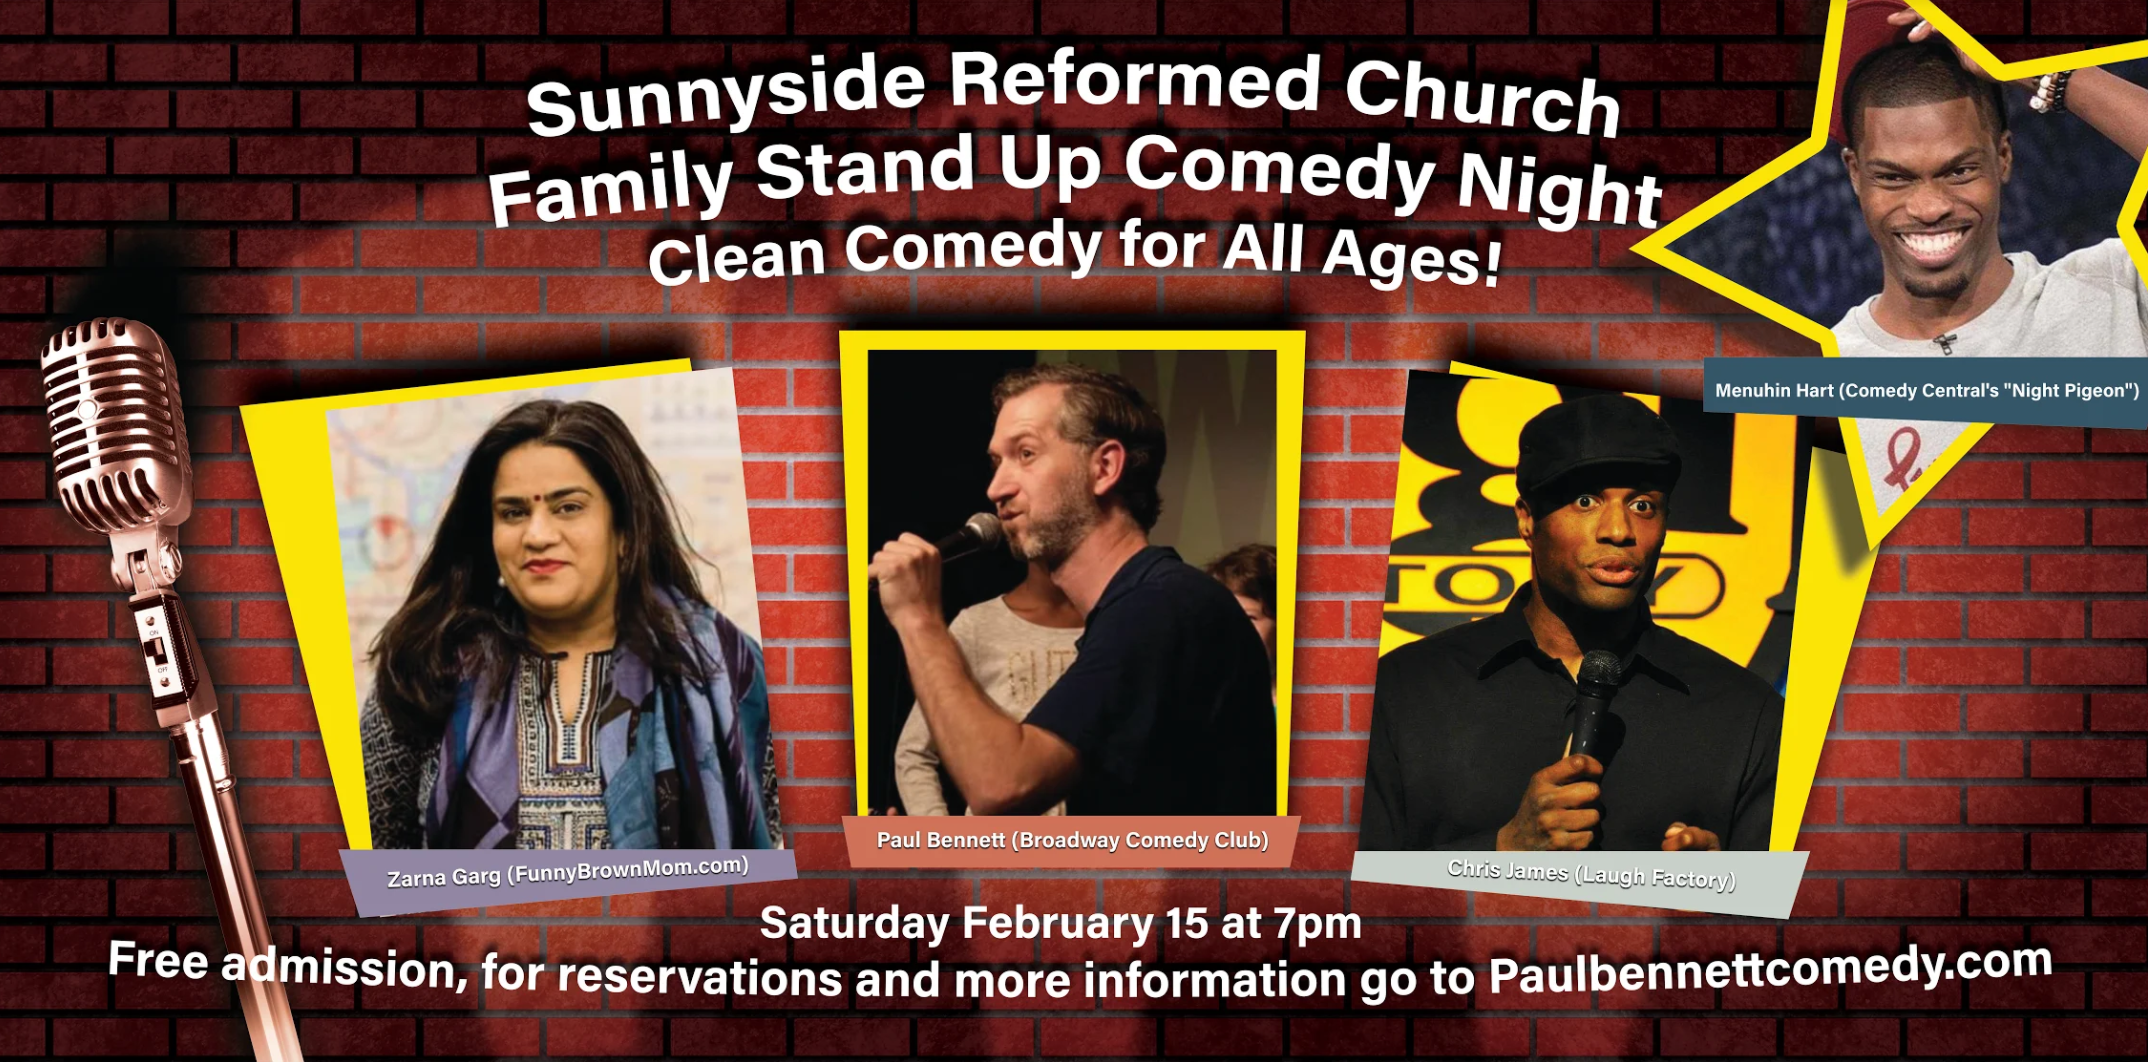 Sunnyside Reformed Church Family Comedy Night at Sunnyside Reformed Church